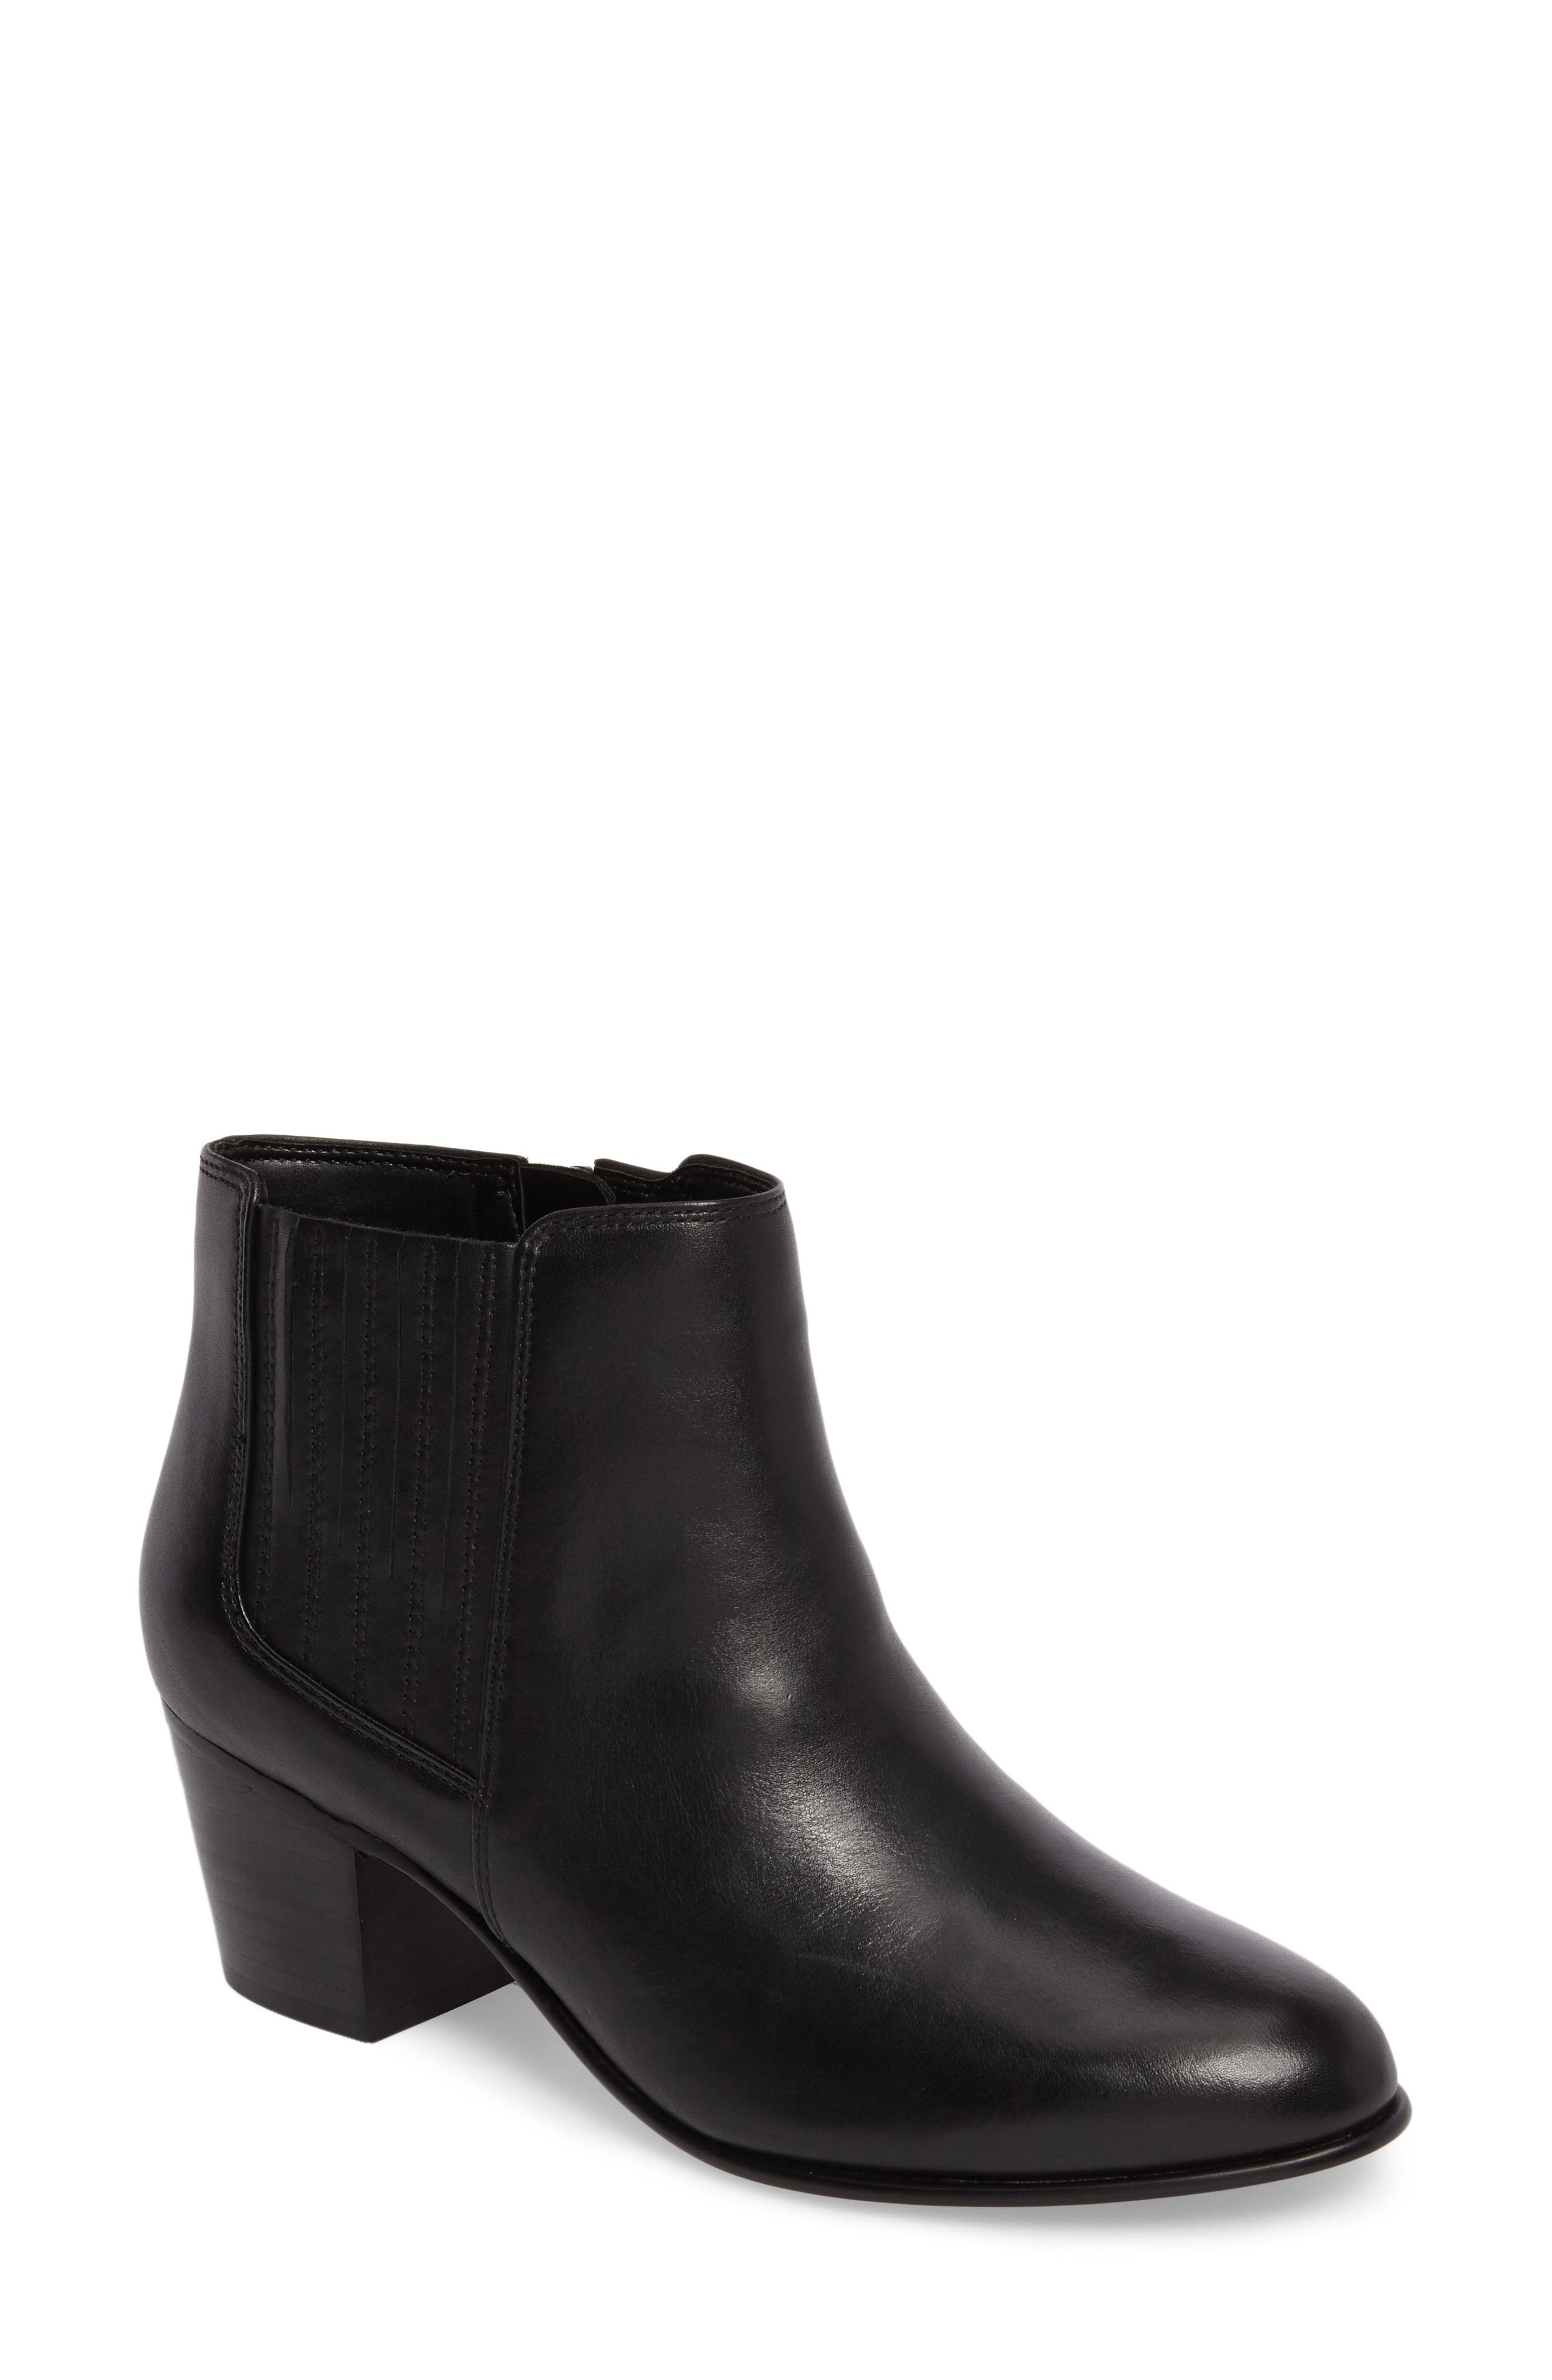 Maypearl Tulsa Bootie,                         Main,                         color, Black Leather